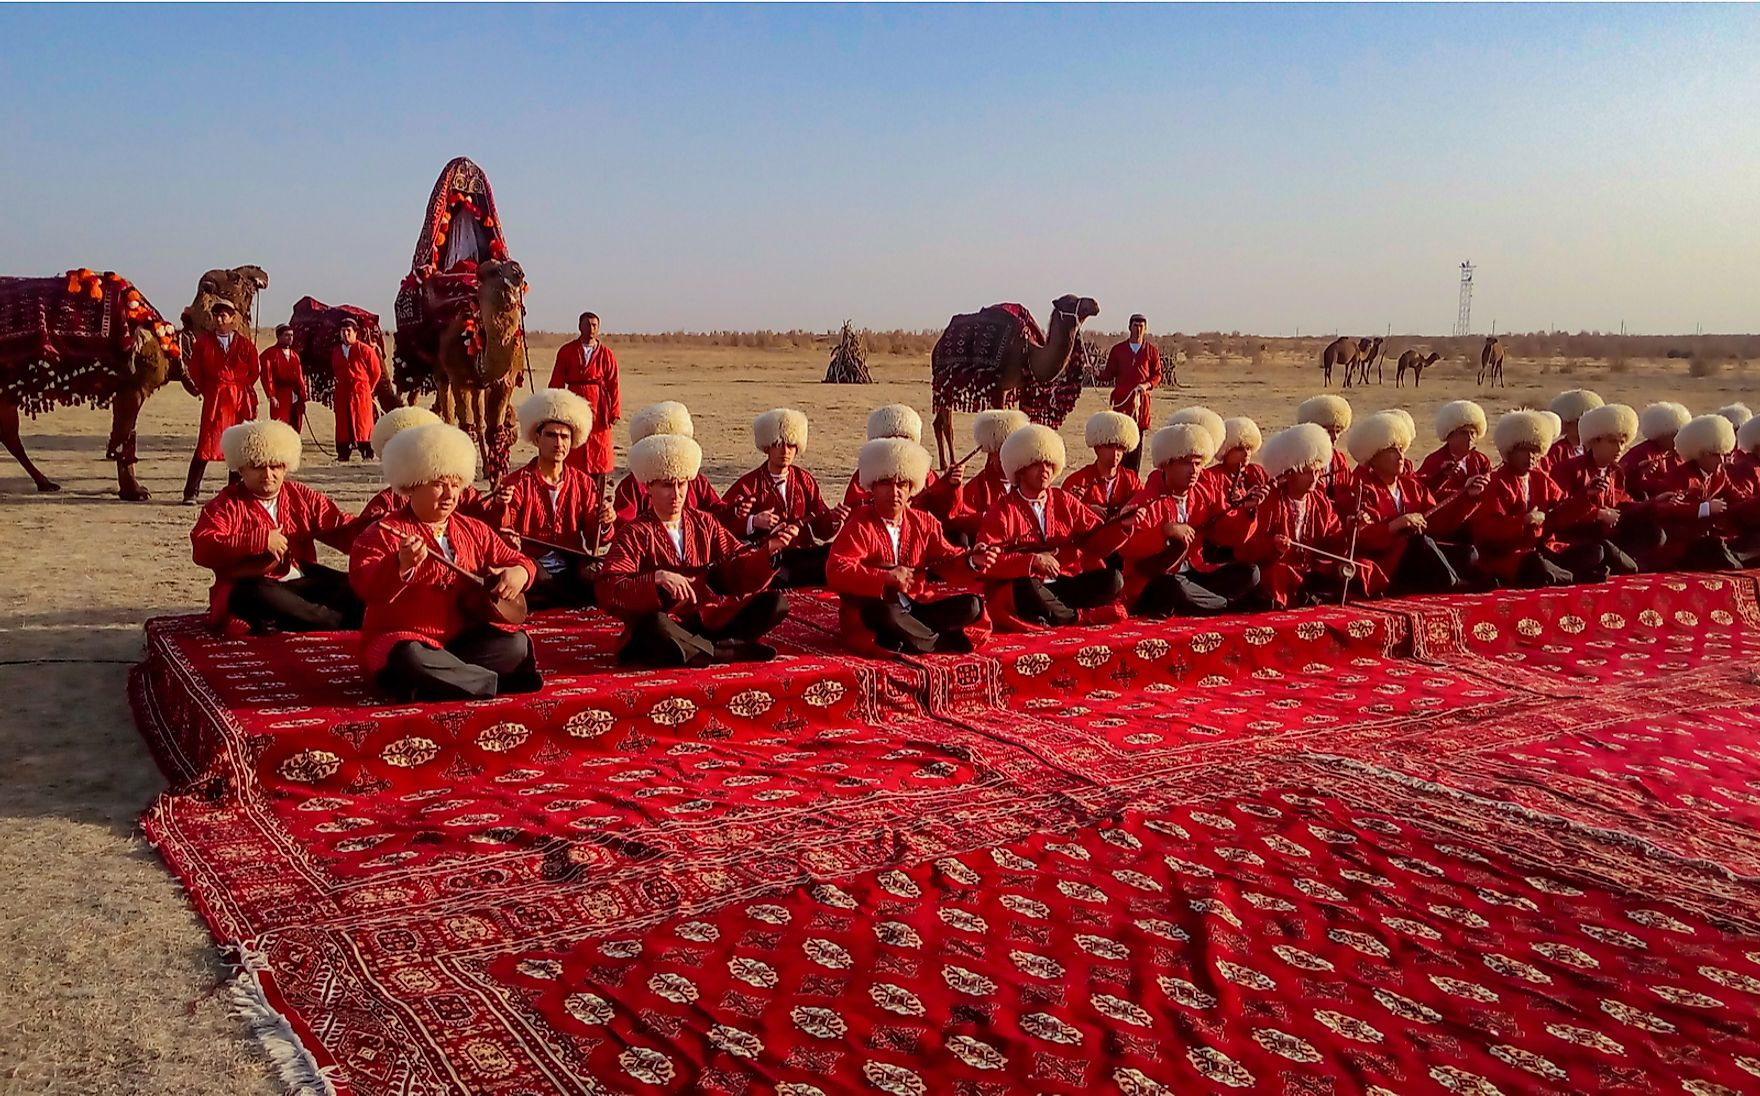 Turkmen sit on a traditional carpet playing musical instruments in Turkmenistan. Olga Nikanovich / Shutterstock.com.